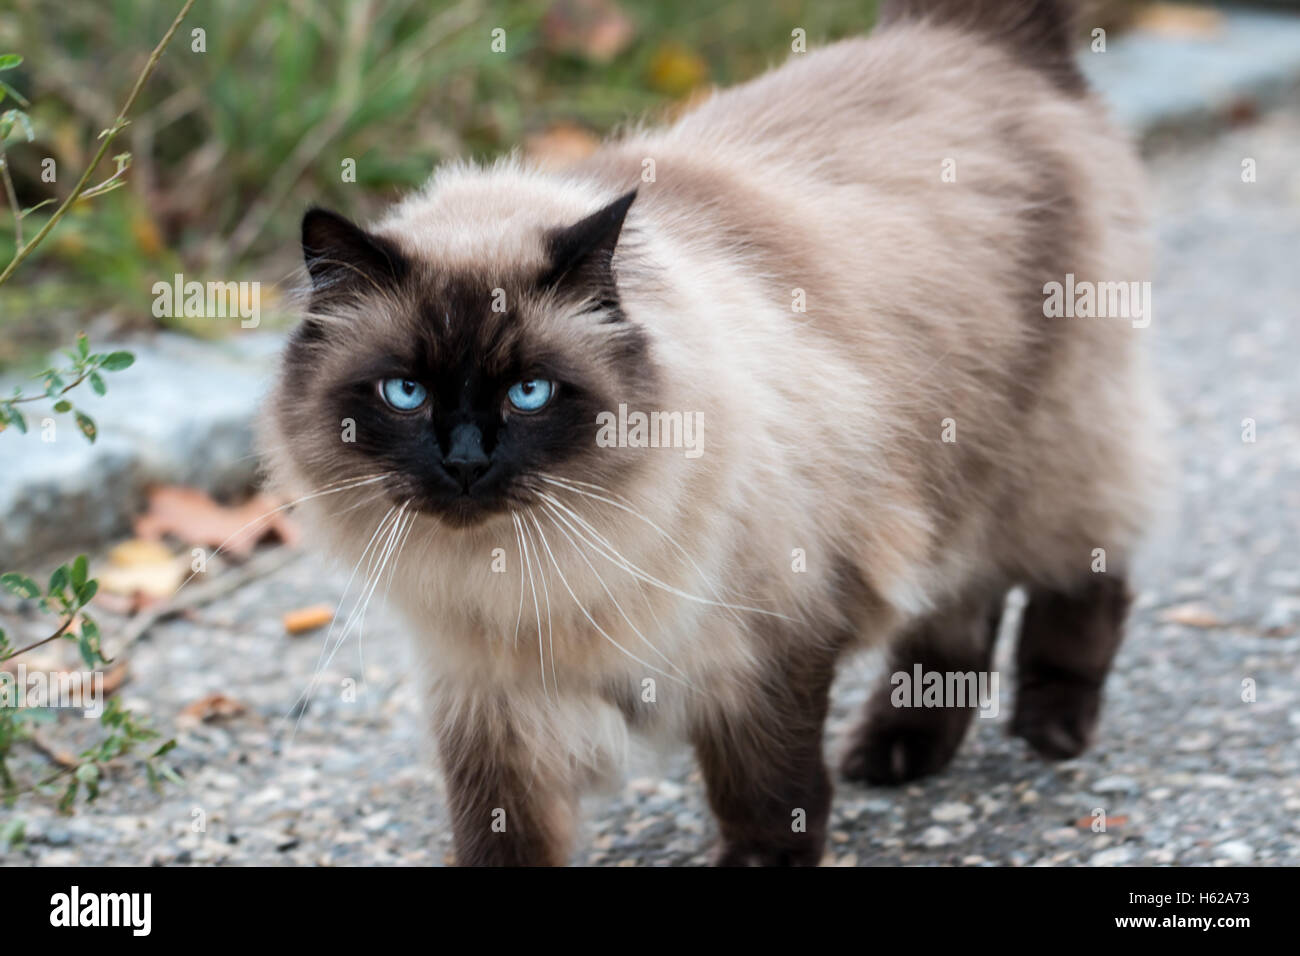 purebred Himalayan cat walking on the pavement - Stock Image